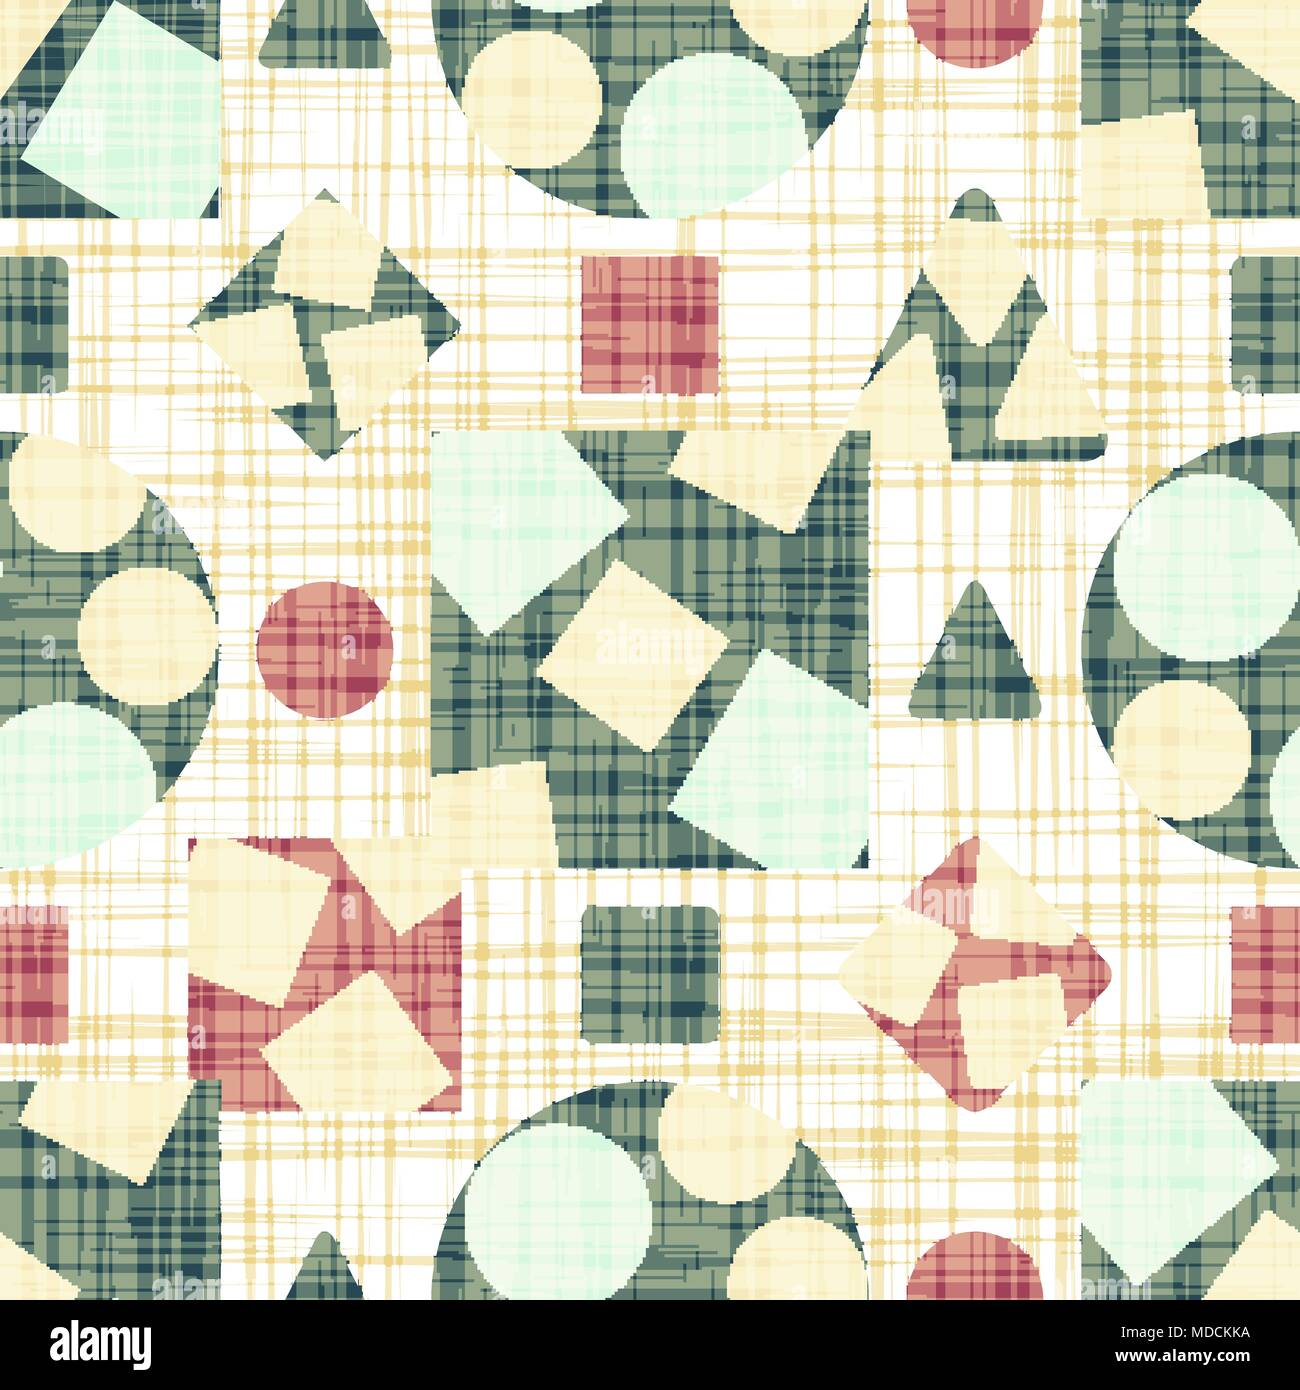 Retro design tissue with geometric shapes. - Stock Image